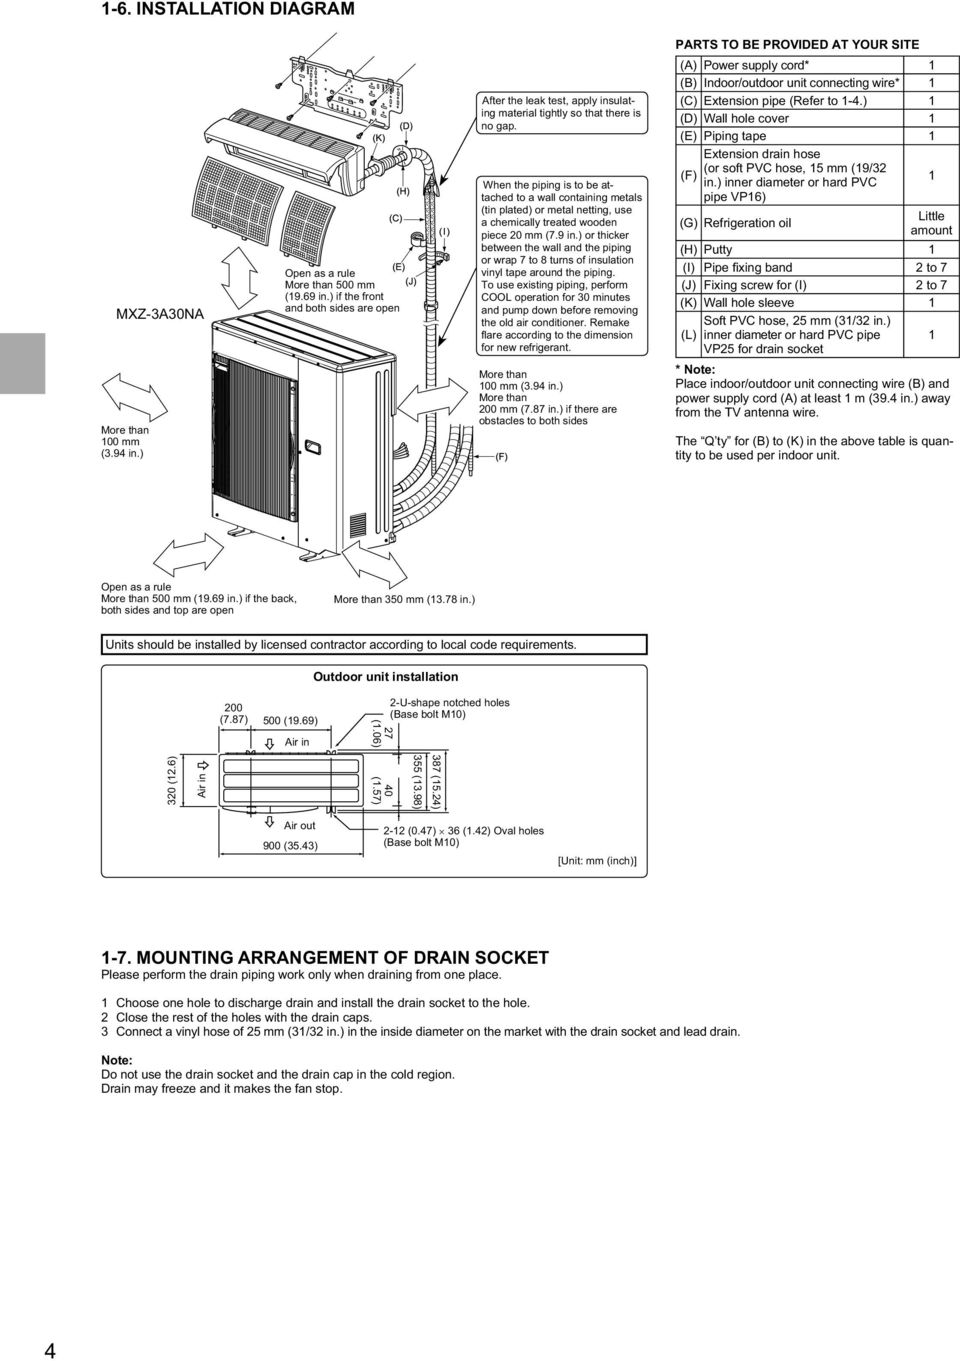 Split Type Air Conditioner Installation Manual Contents For Old Wiring Diagram Down Before Removing The Remake New Refrigerant